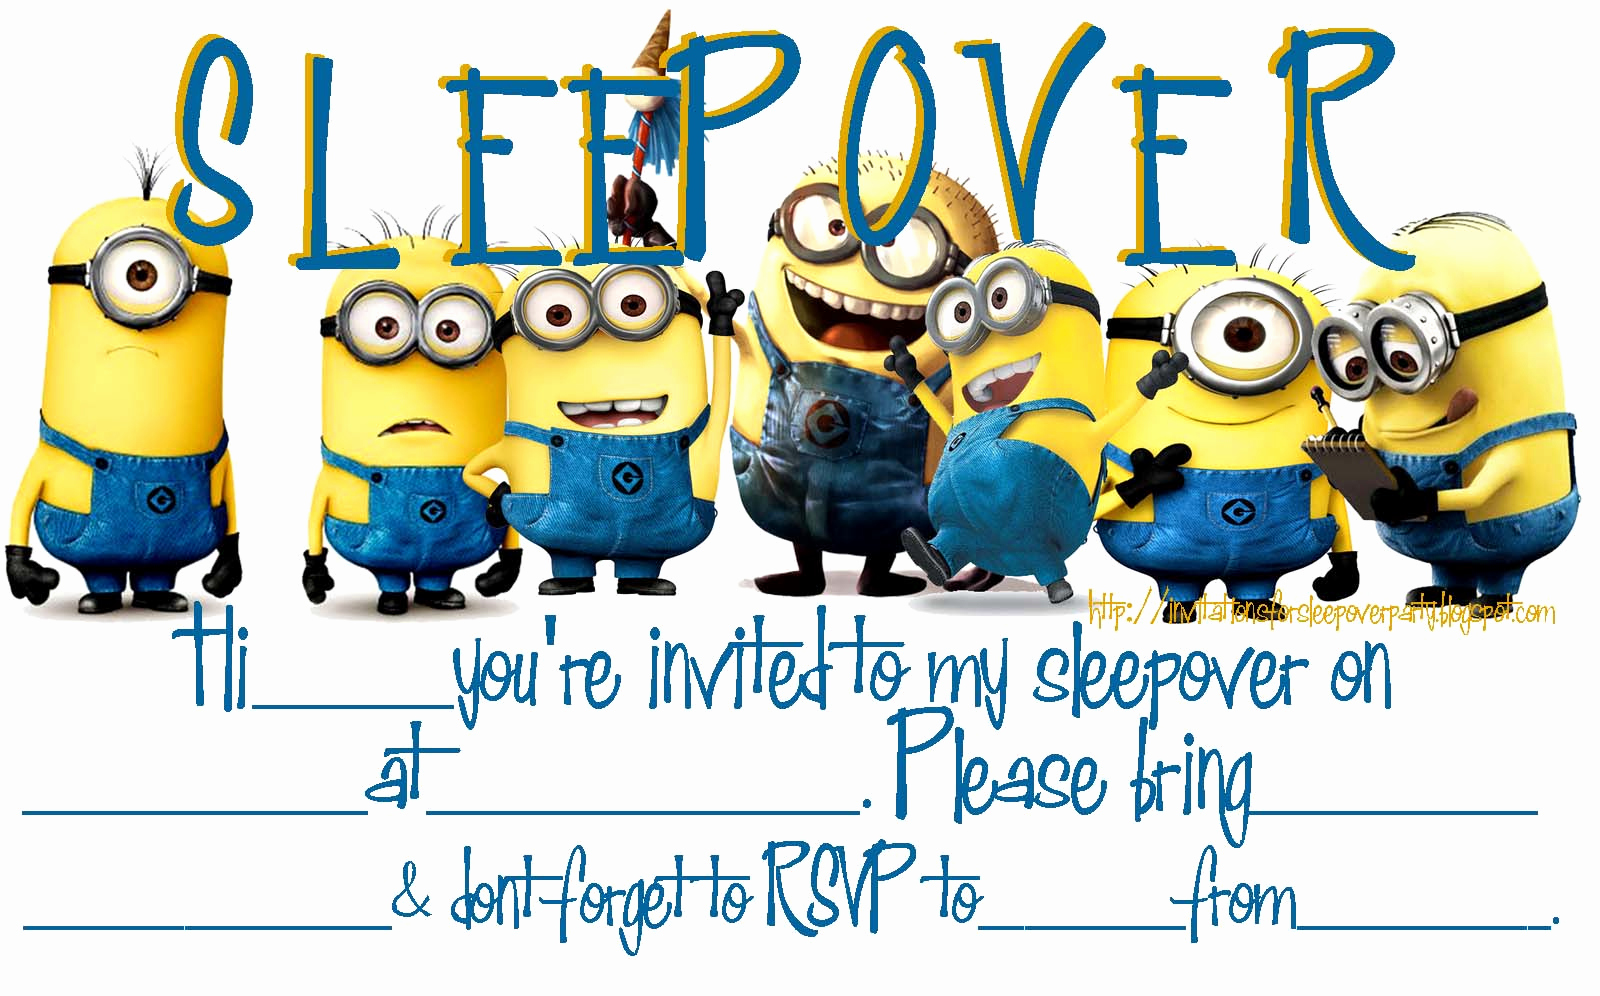 Minions Birthday Invitation Maker Luxury Invitations for Sleepover Party